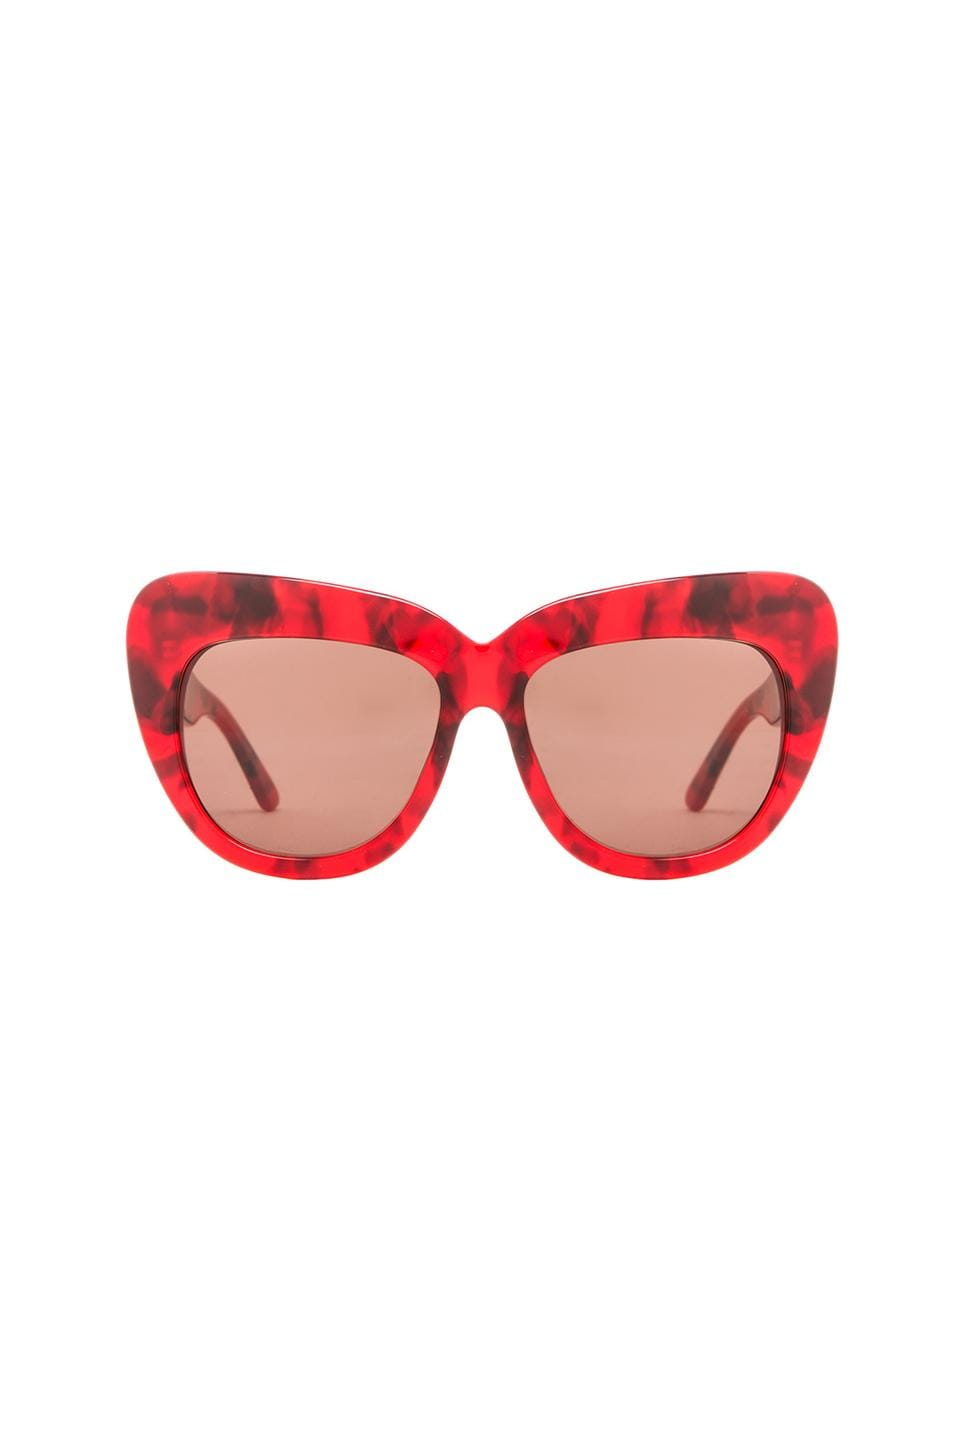 House of Harlow 1960 House of Harlow Chelsea Sunglasses in Blood